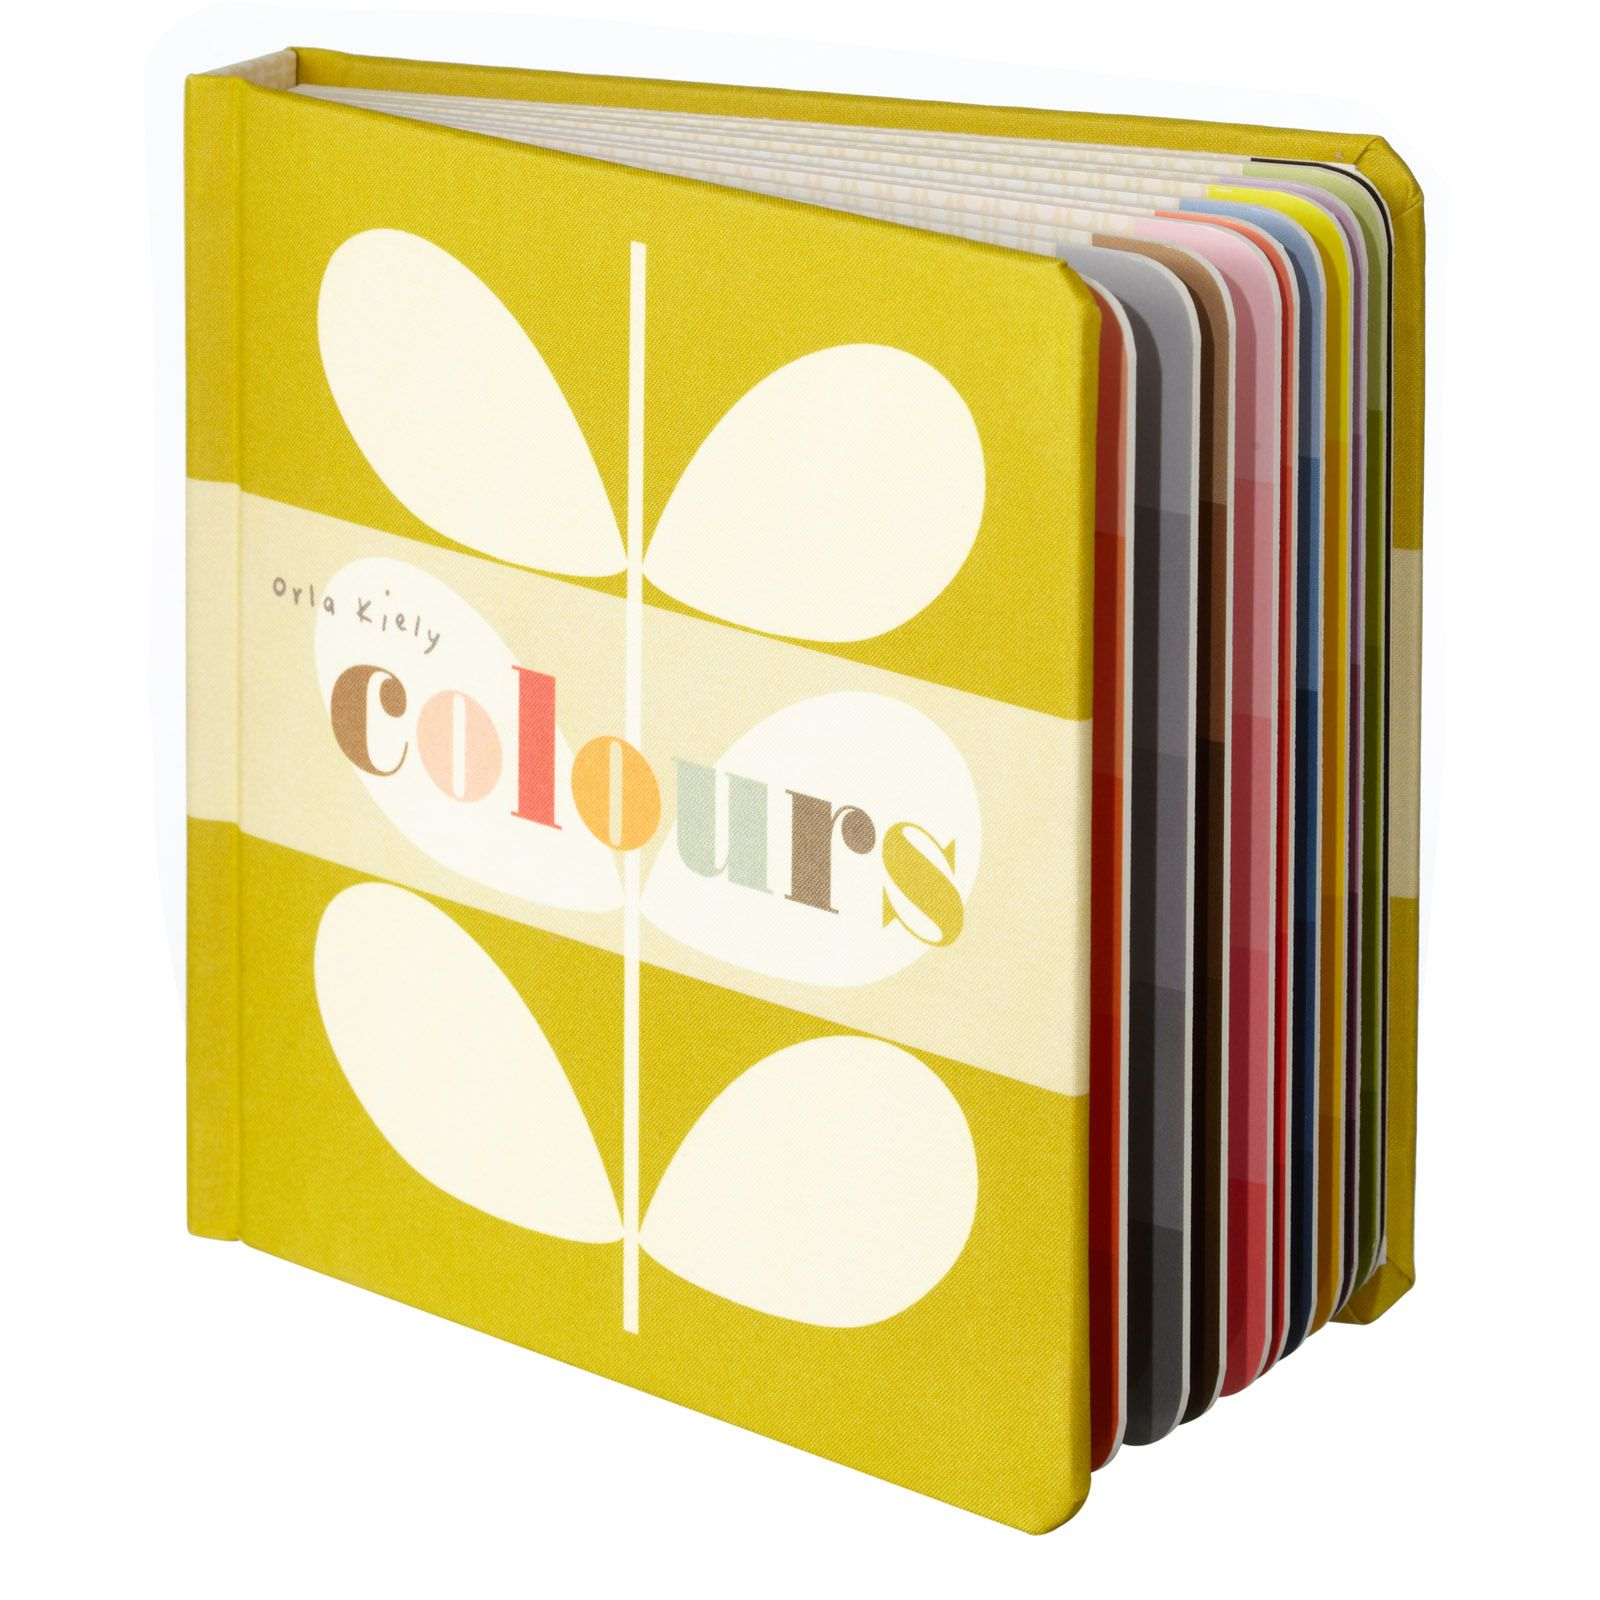 orla kiely colours book for babies must get - Colors Book